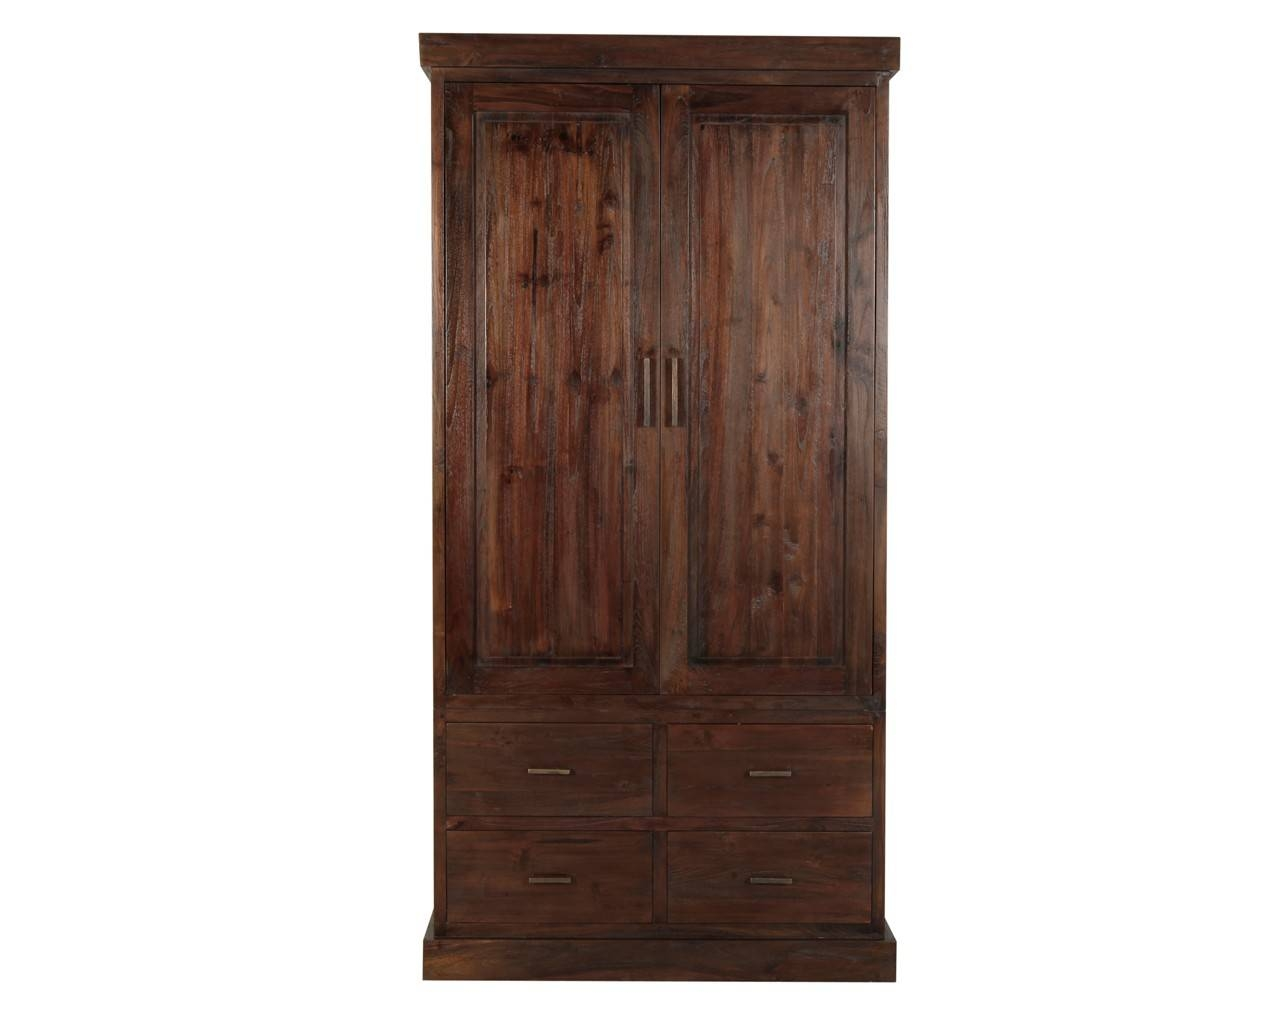 Puji: Reclaimed Teak Wardrobes | Dark Wood Gents Wardrobe with regard to Solid Dark Wood Wardrobes (Image 16 of 30)